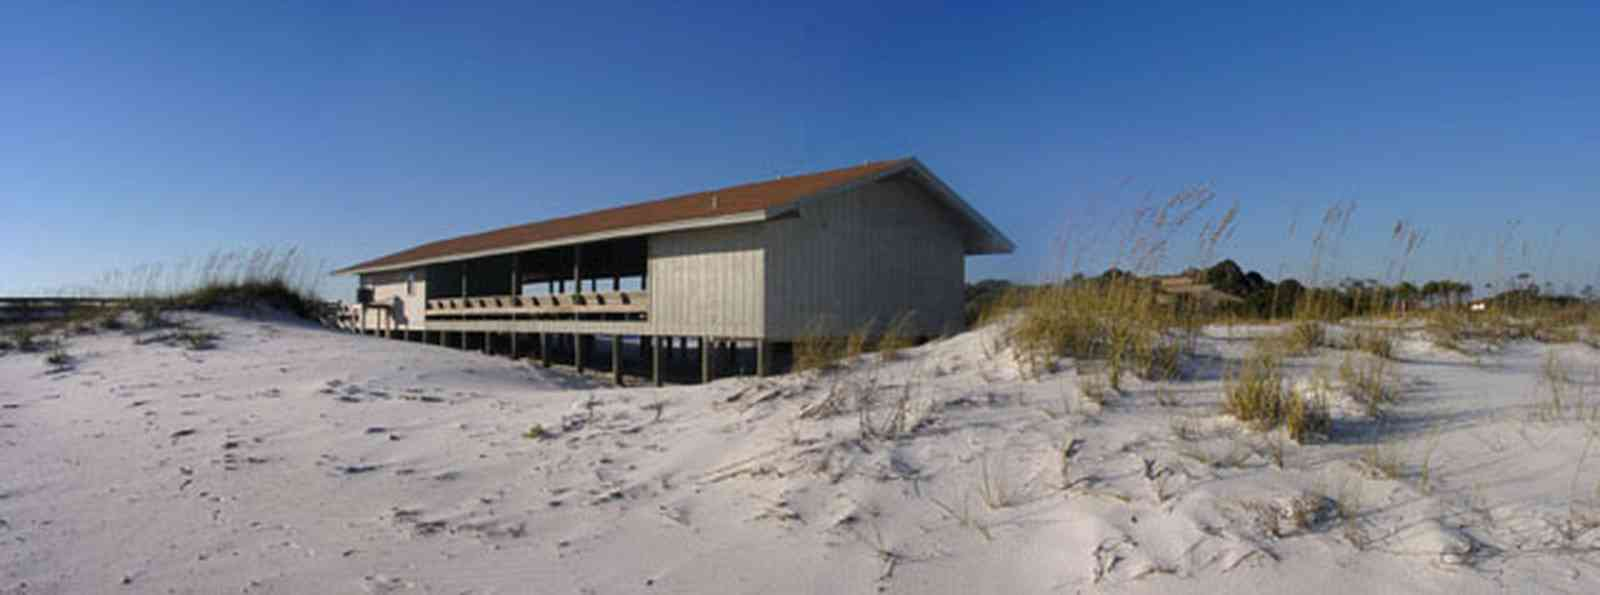 Gulf-Islands-National-Seashore:-Langdon-Beach_10.jpg:  picnic area, walkover, boardwalk, battery langdon, dune, sea oats